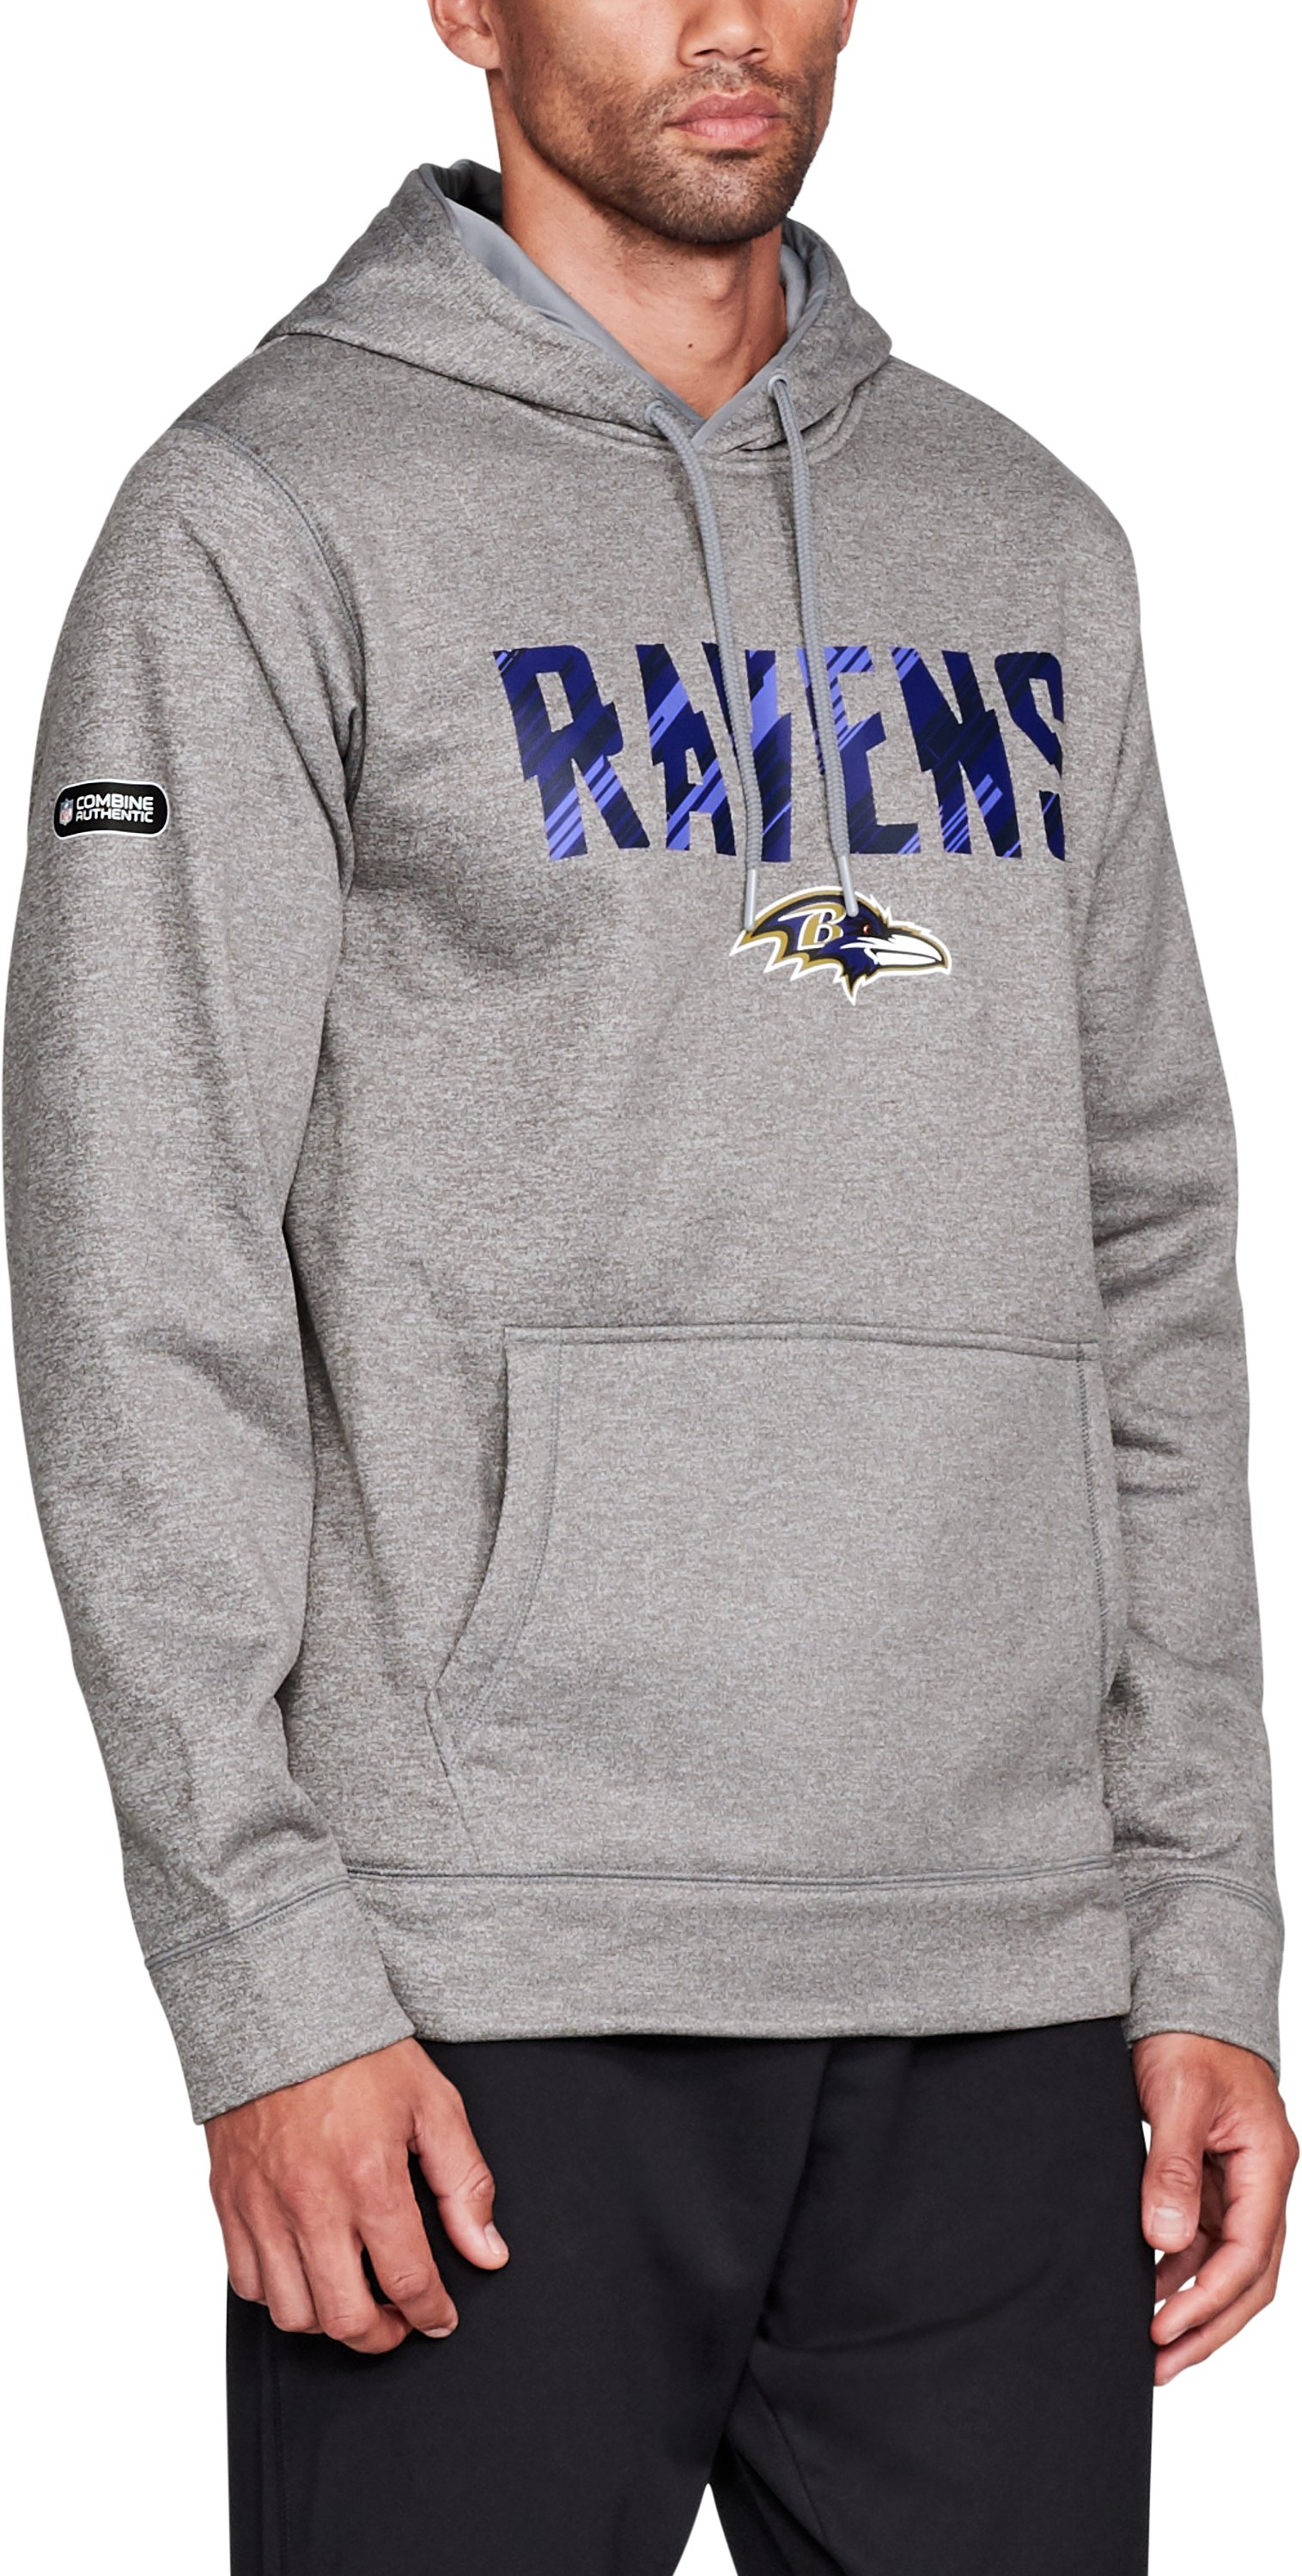 Men's NFL Combine Authentic Wordmark Hoodie, Baltimore Ravens,